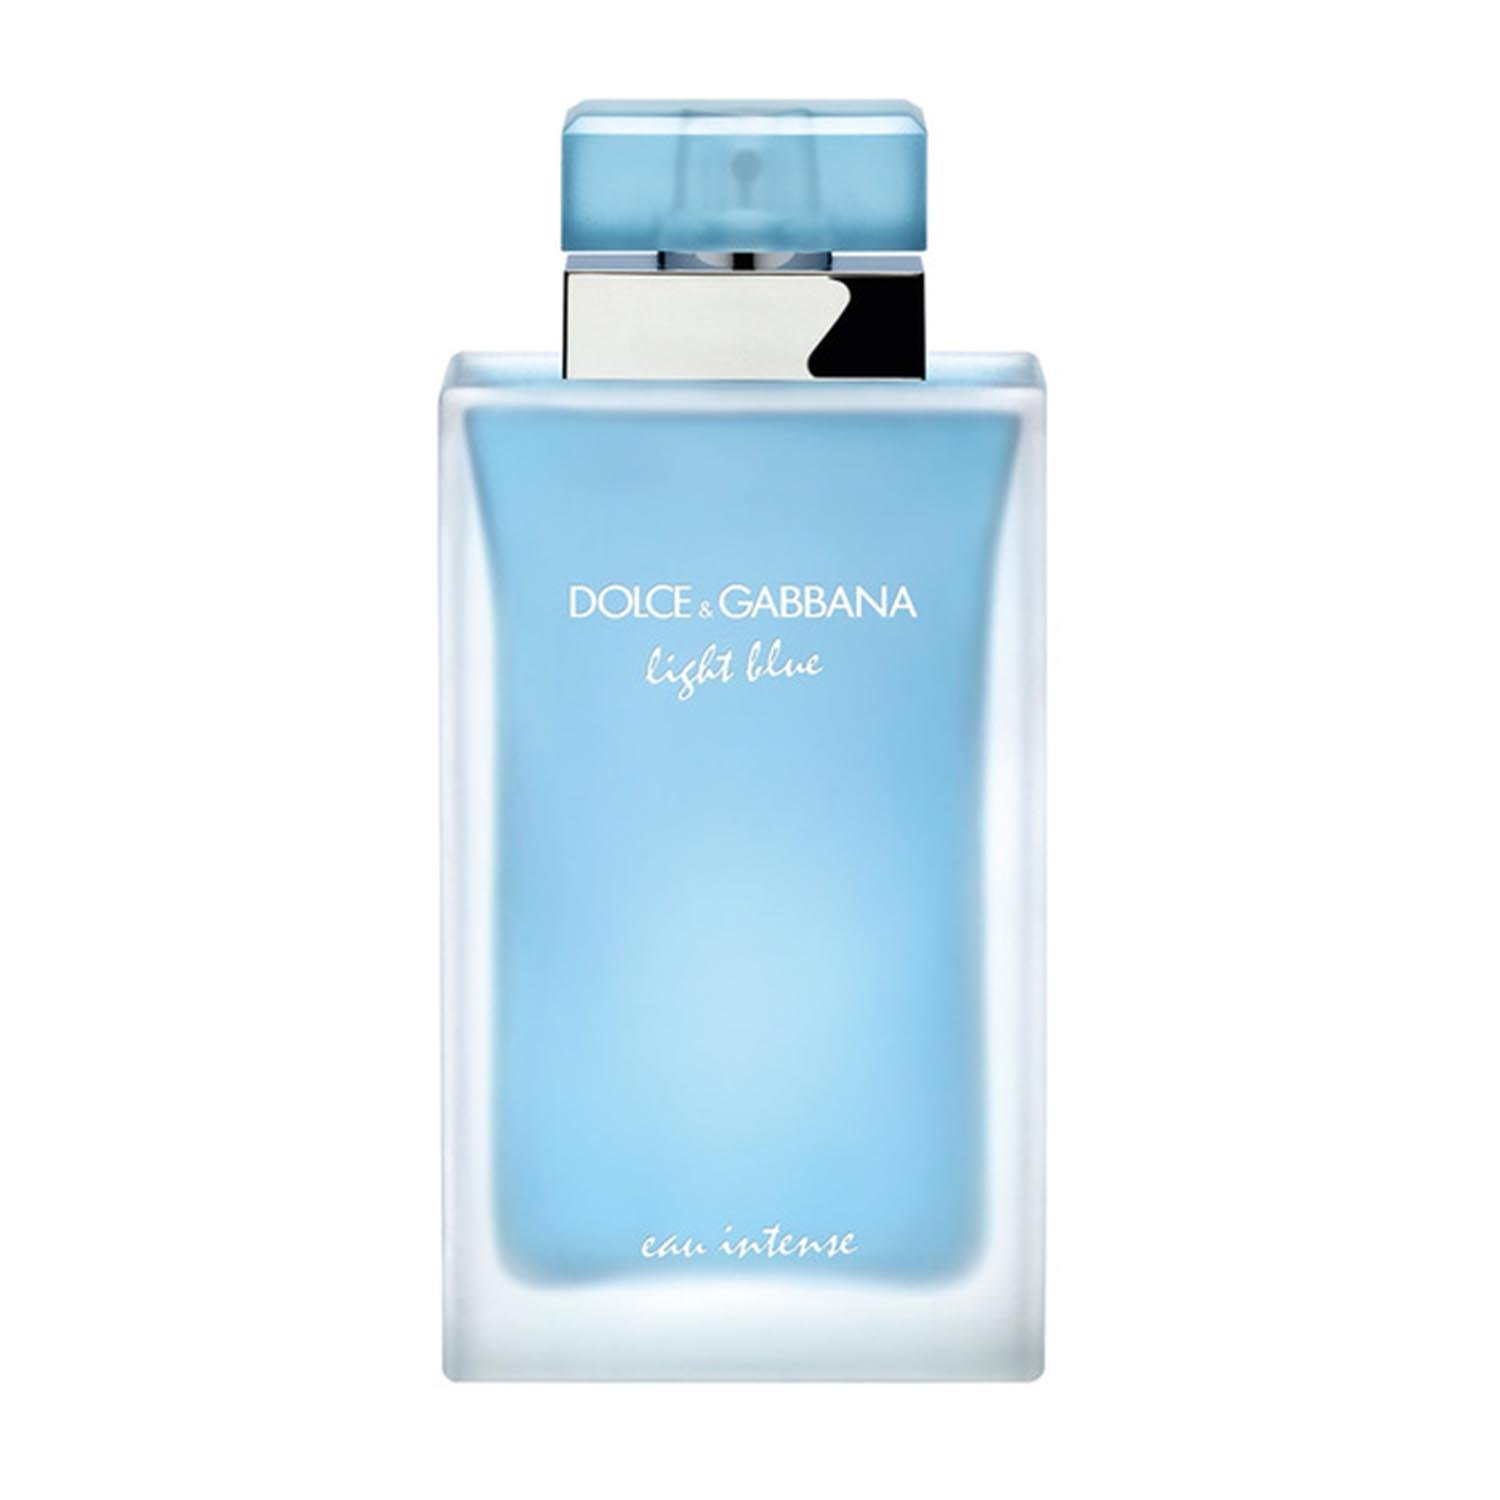 Dolce & Gabbana Light Blue Eau Intense For Women Eau De Parfum Spray 3.3 oz